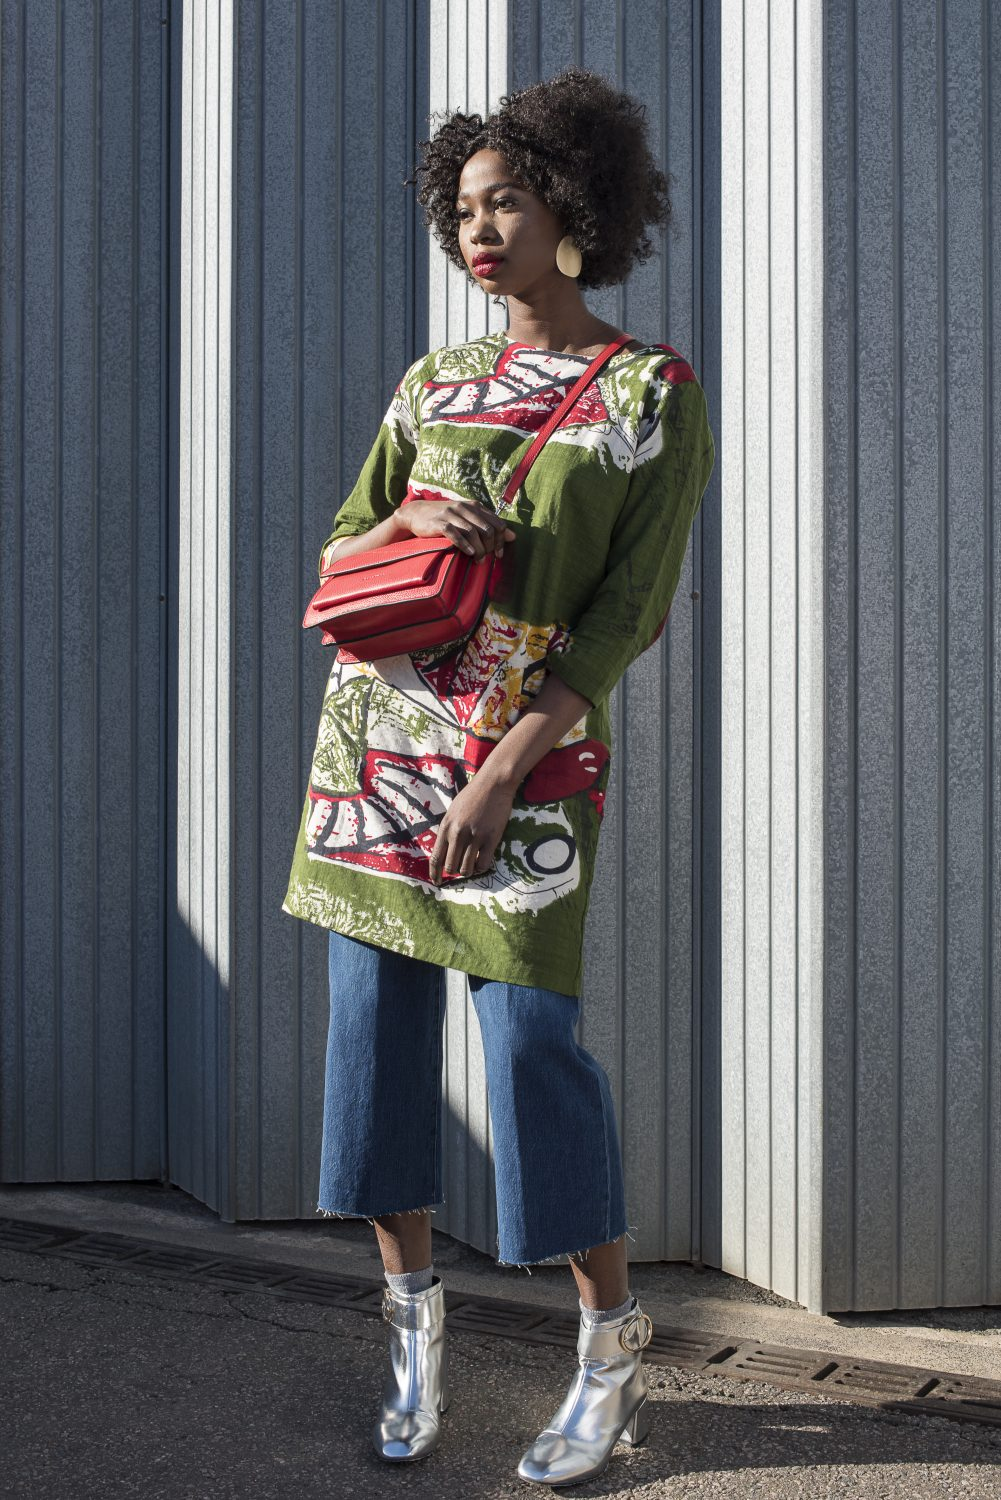 Printed tunic, £69, disc earrings, £19, Who's Wearing What Boutique whoswearingwhat- boutique.co.uk; cropped jeans. £245, Hall & Co halland.co; ankle boots, £79, Kurt Geiger at Ashford Designer Outlet ashforddesigneroutlet.com; bag, £99, manukashoes.com; ankle socks, stylist's own